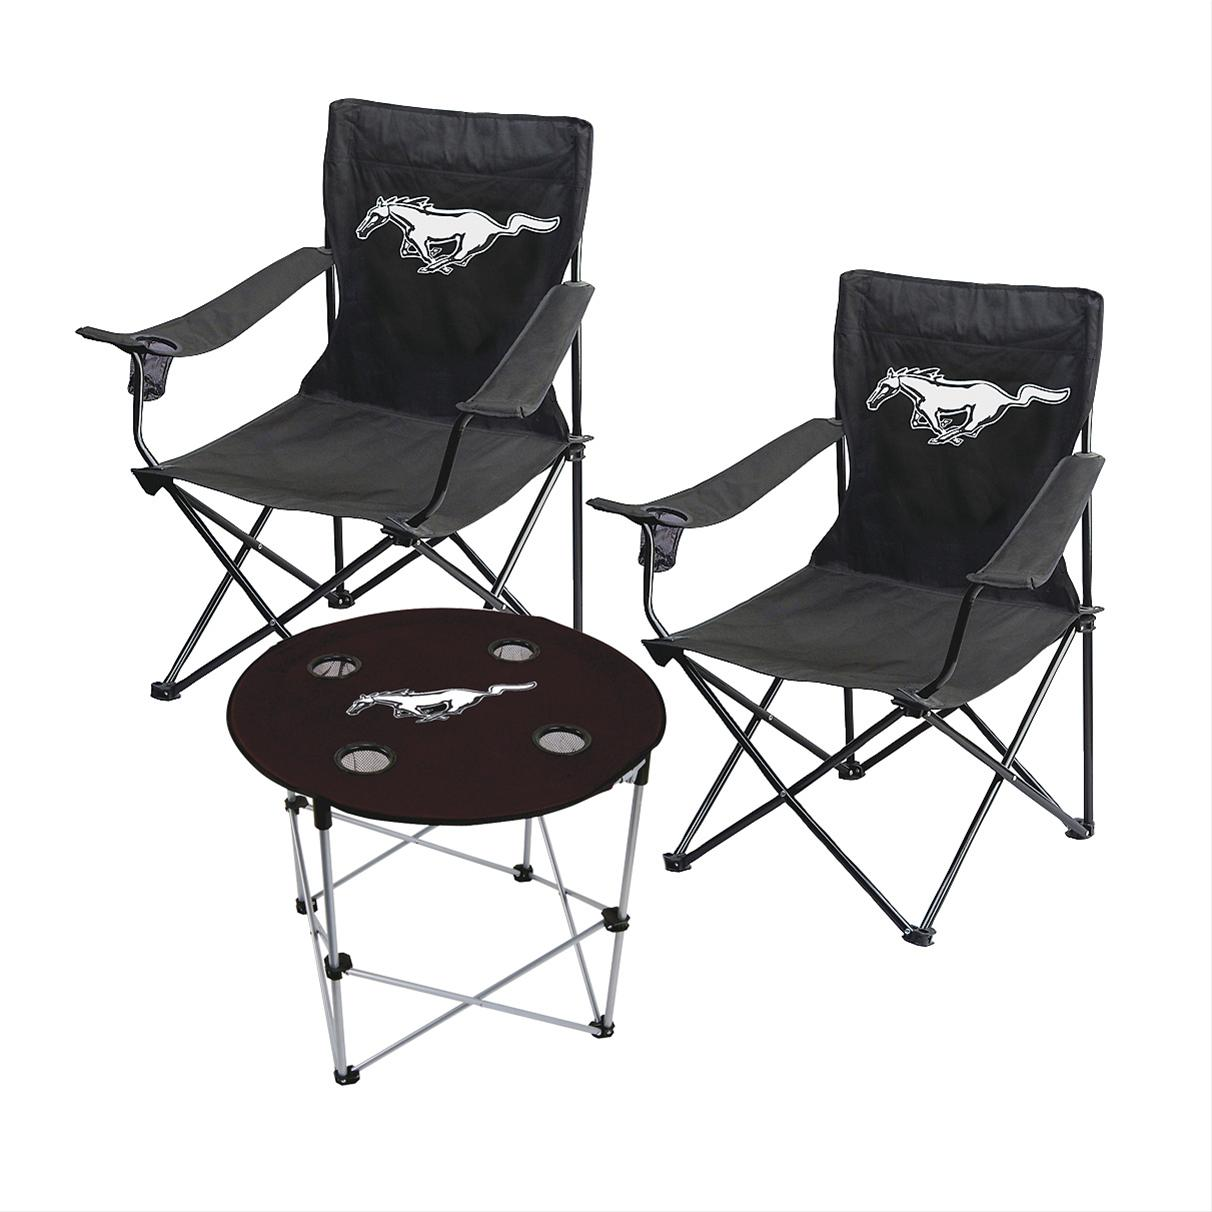 Genuine Hotrod Hardware 174 Folding Chair And Table Combos